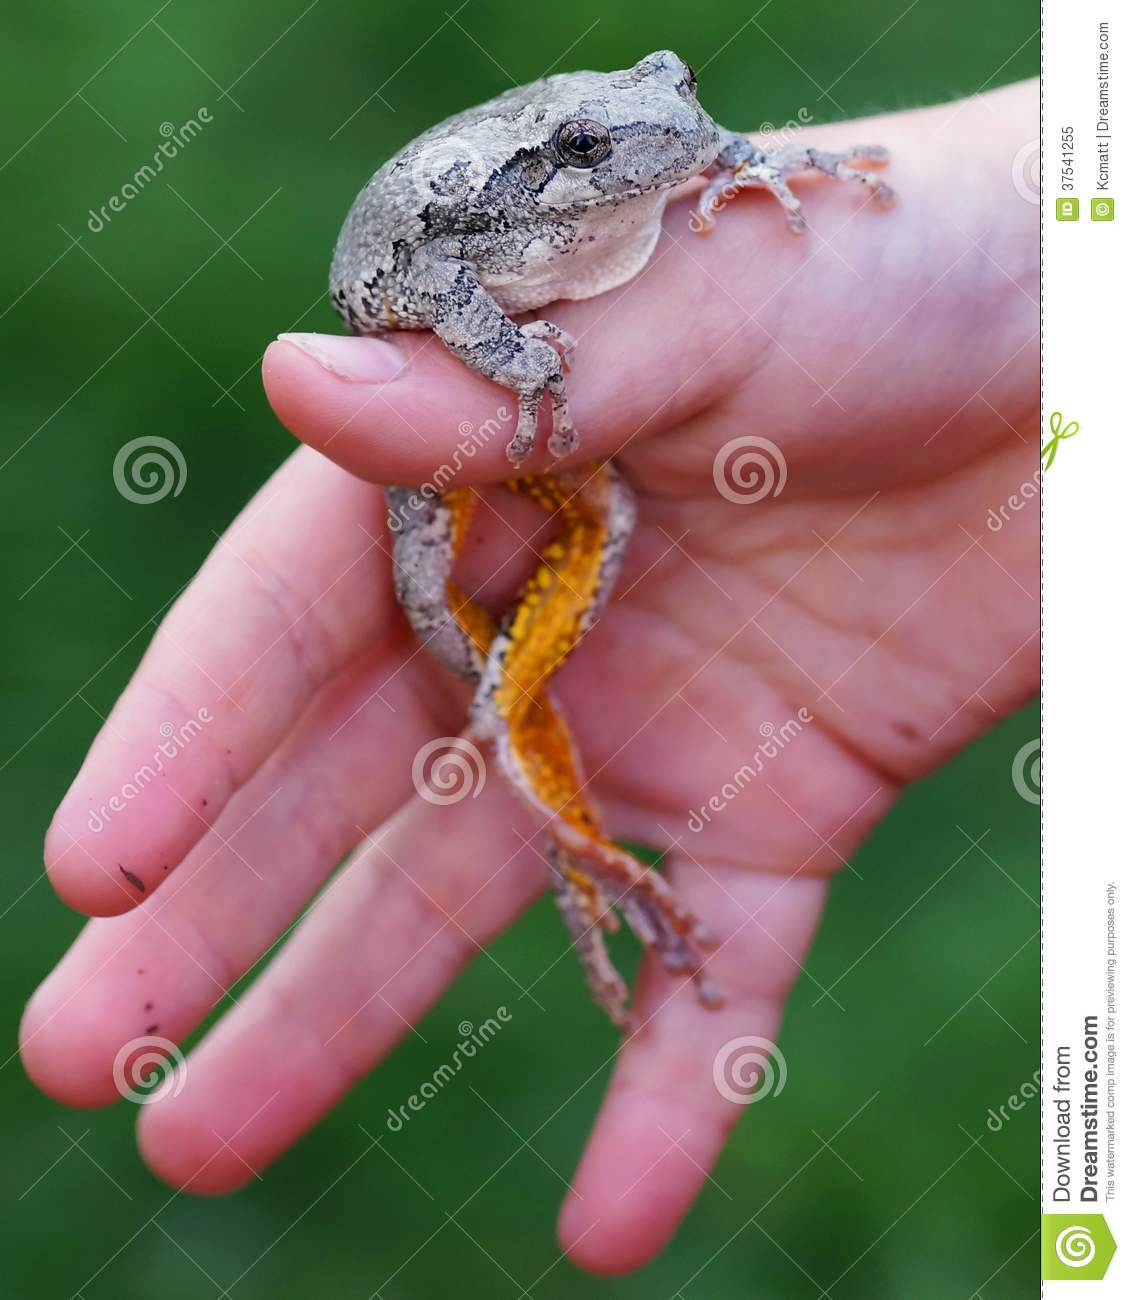 Tree Frog in hand of a boy